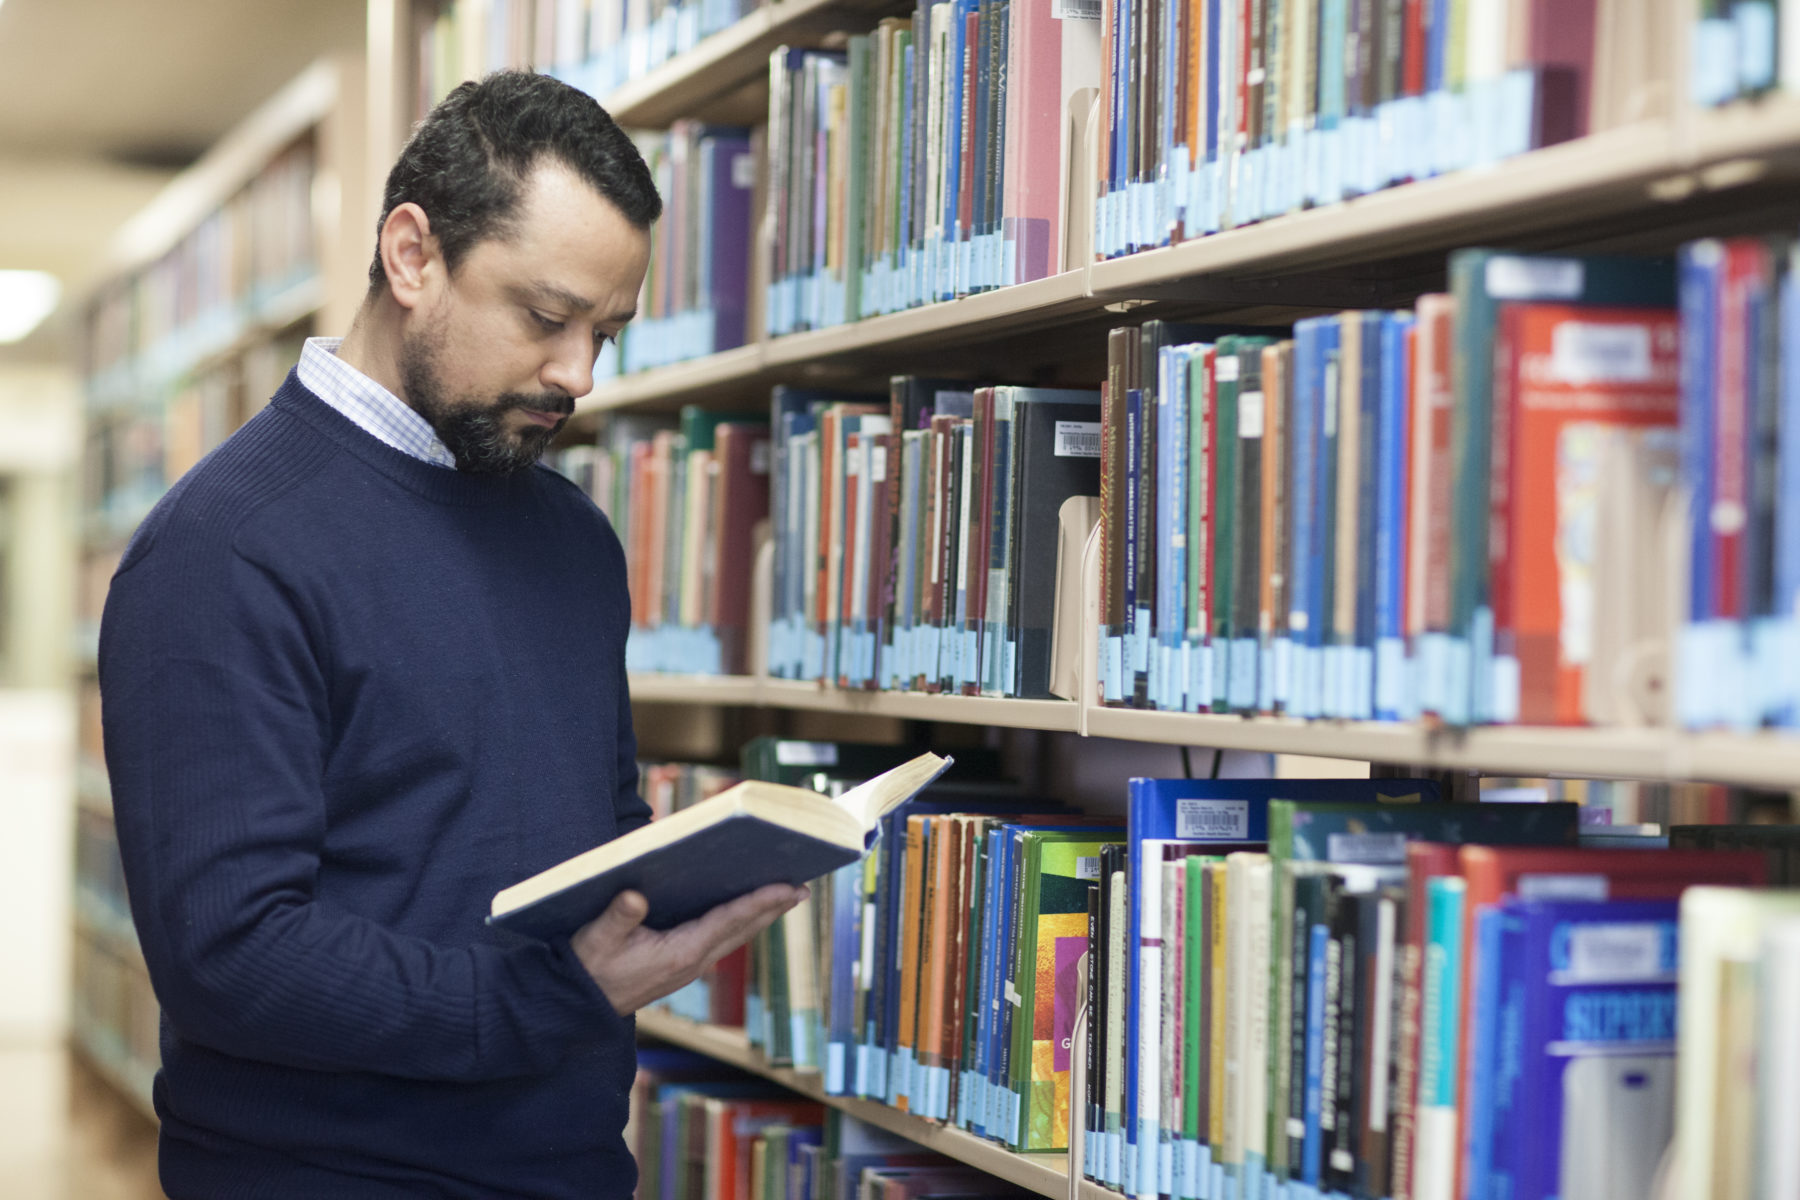 Standing in Library